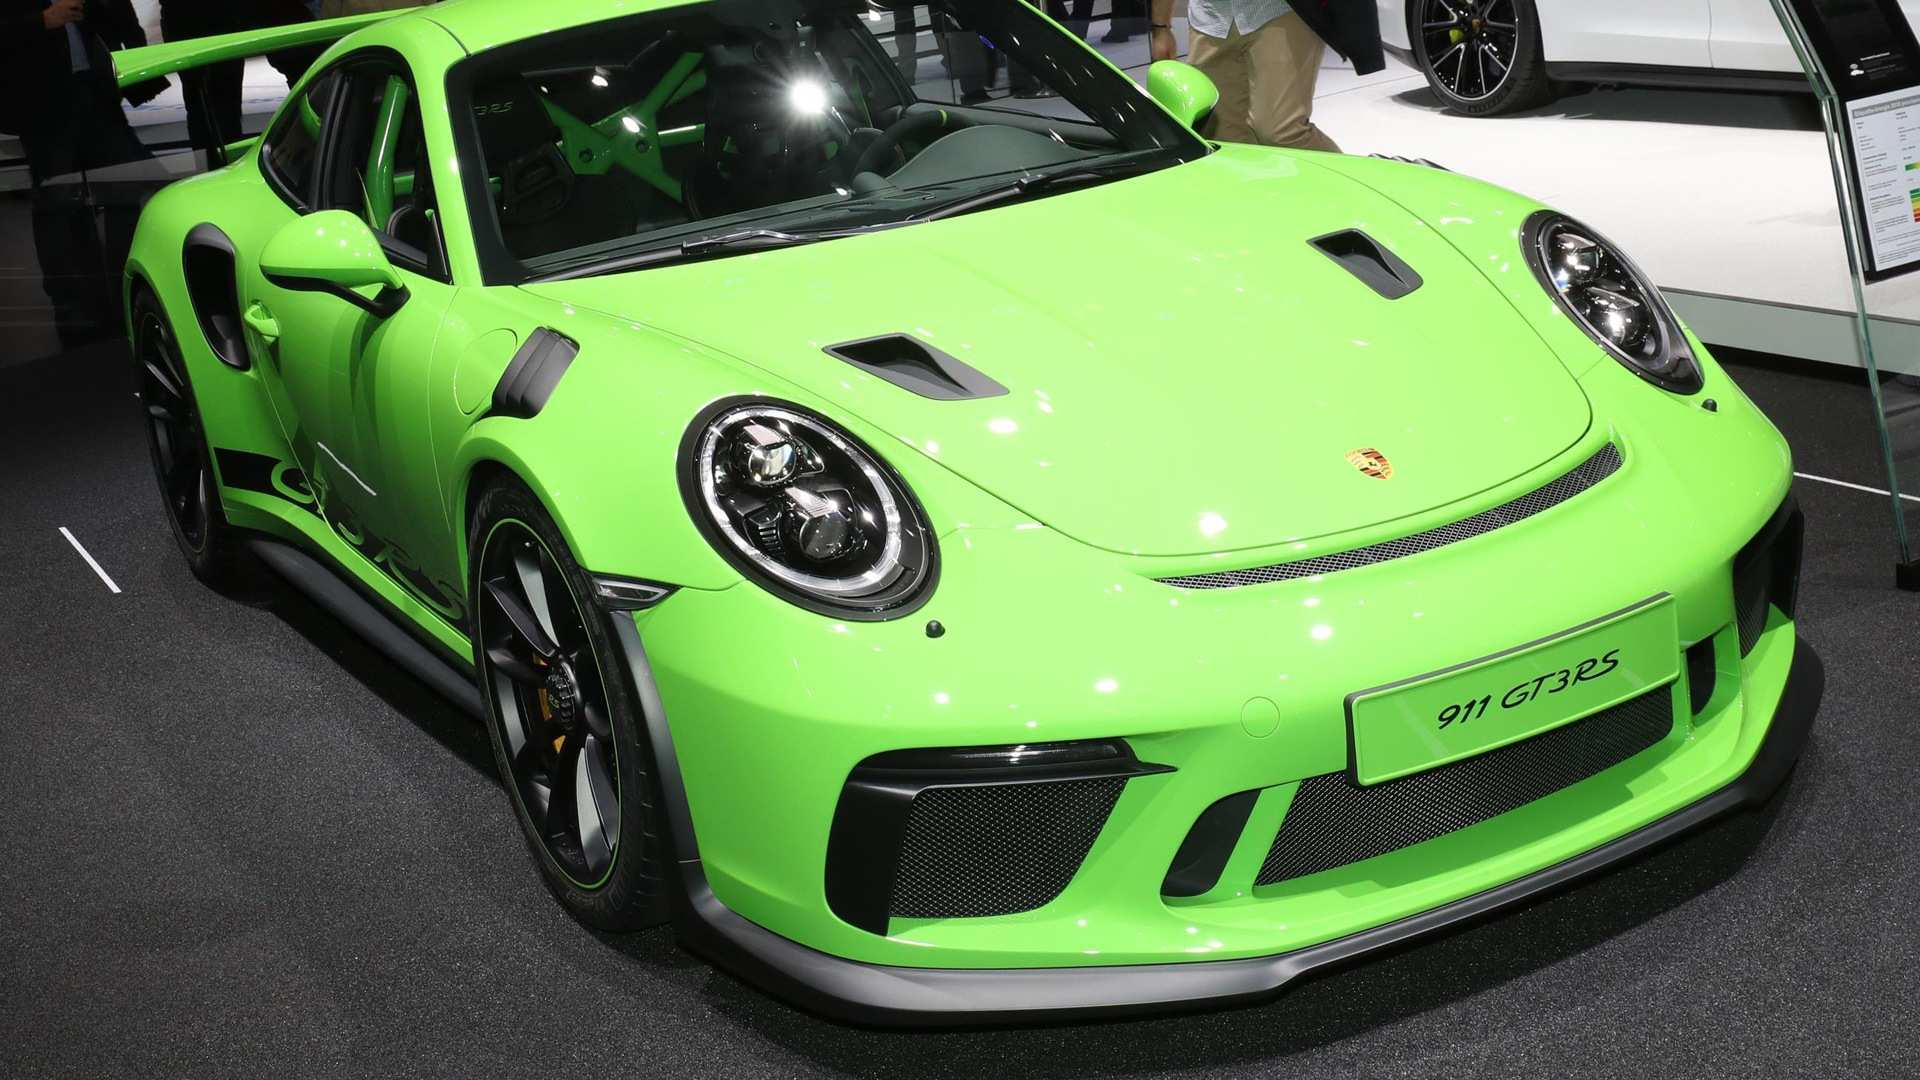 71 The 2019 Porsche Gt3 Rs Price And Review